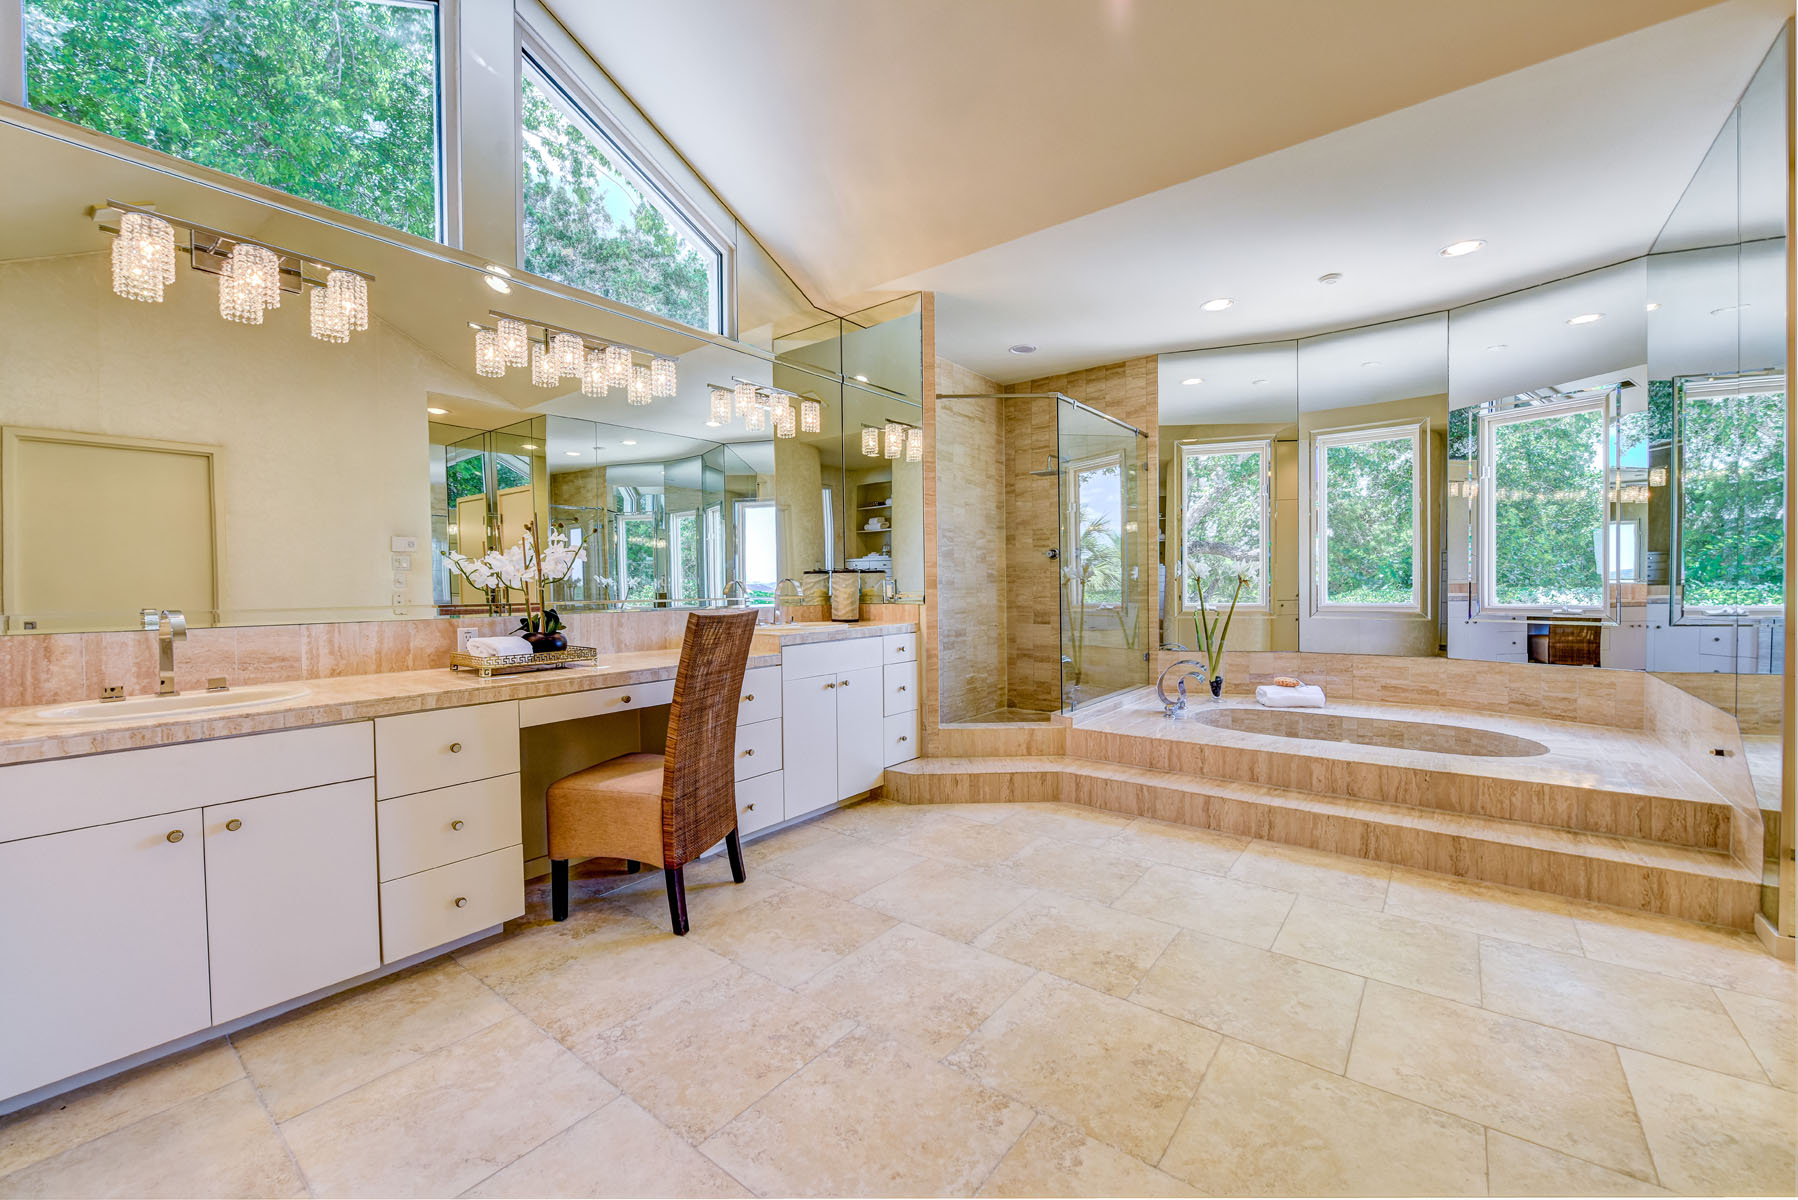 Additional photo for property listing at The Crown Jewel of Barton Creek 3304 Barton Creek Blvd Austin, Texas 78735 Estados Unidos